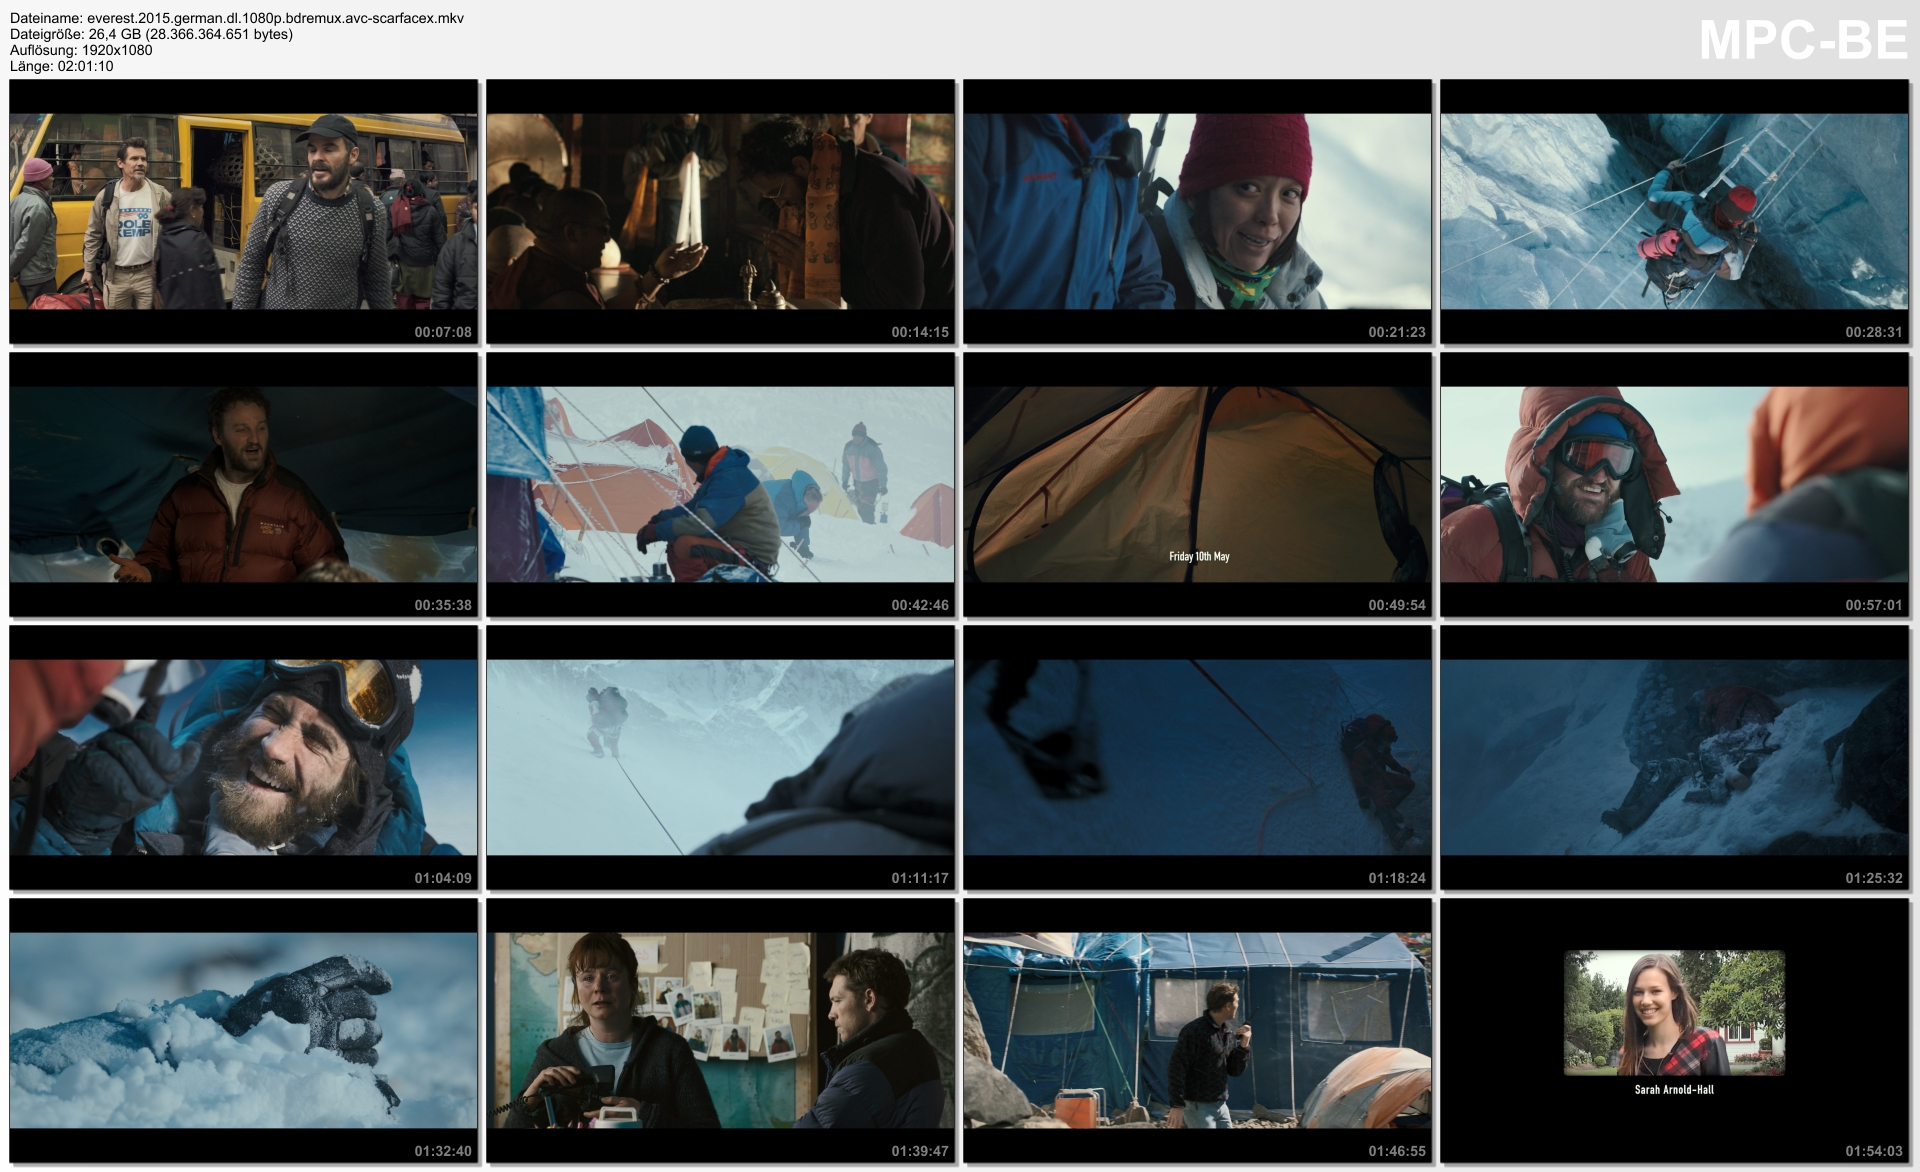 Abenteuer] Everest 2015 German DL 1080p BD-Remux AVC - scarfacex